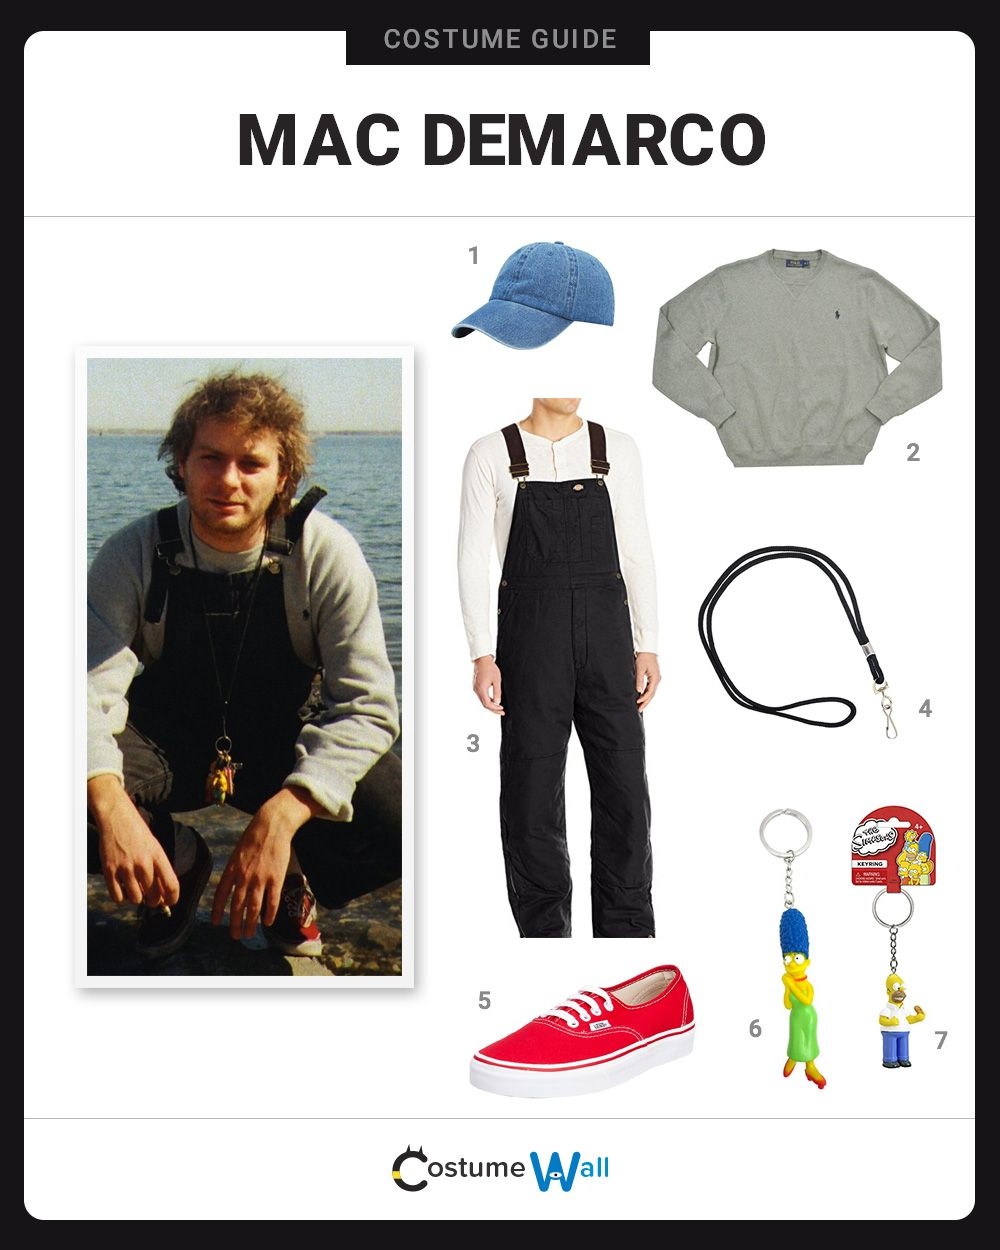 dcf4c033a The best costume guide for dressing up like Mac DeMarco, the up and coming  singer-songwriter who has a unique style of music and fashion.